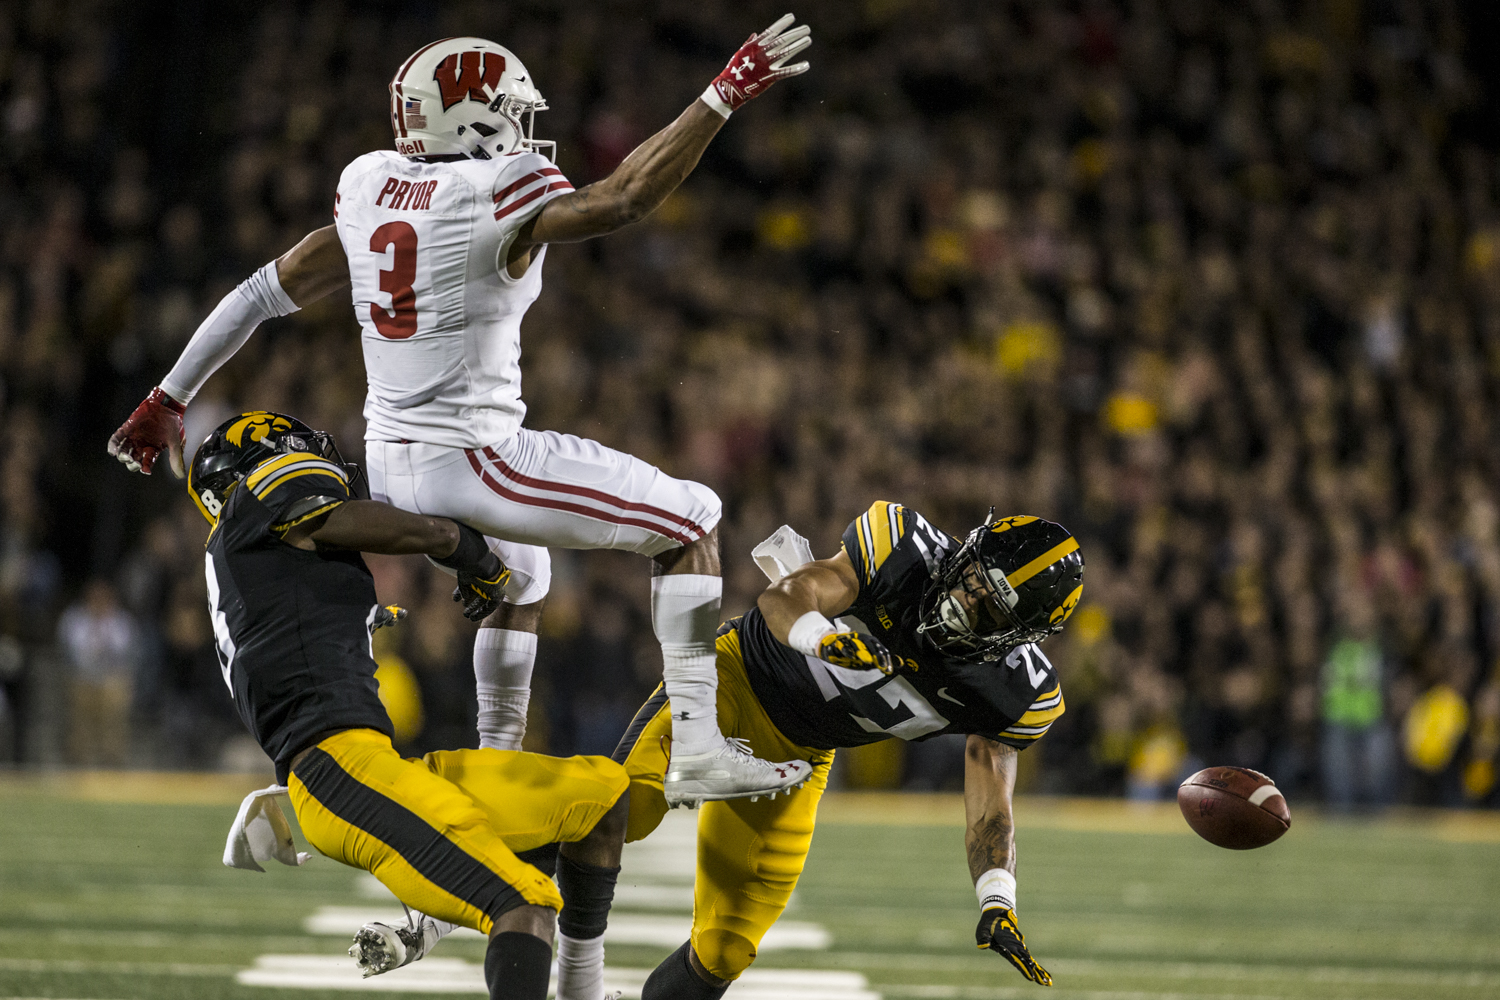 Iowa+defensive+back+Amani+Hooker+breaks+up+a+pass+intended+for+Wisconsin+wide+receiver+Kendric+Pryor+during+Iowa%27s+game+against+Wisconsin+at+Kinnick+Stadium+on+Saturday%2C+September+22%2C+2018.+The+Badgers+defeated+the+Hawkeyes+28-17.